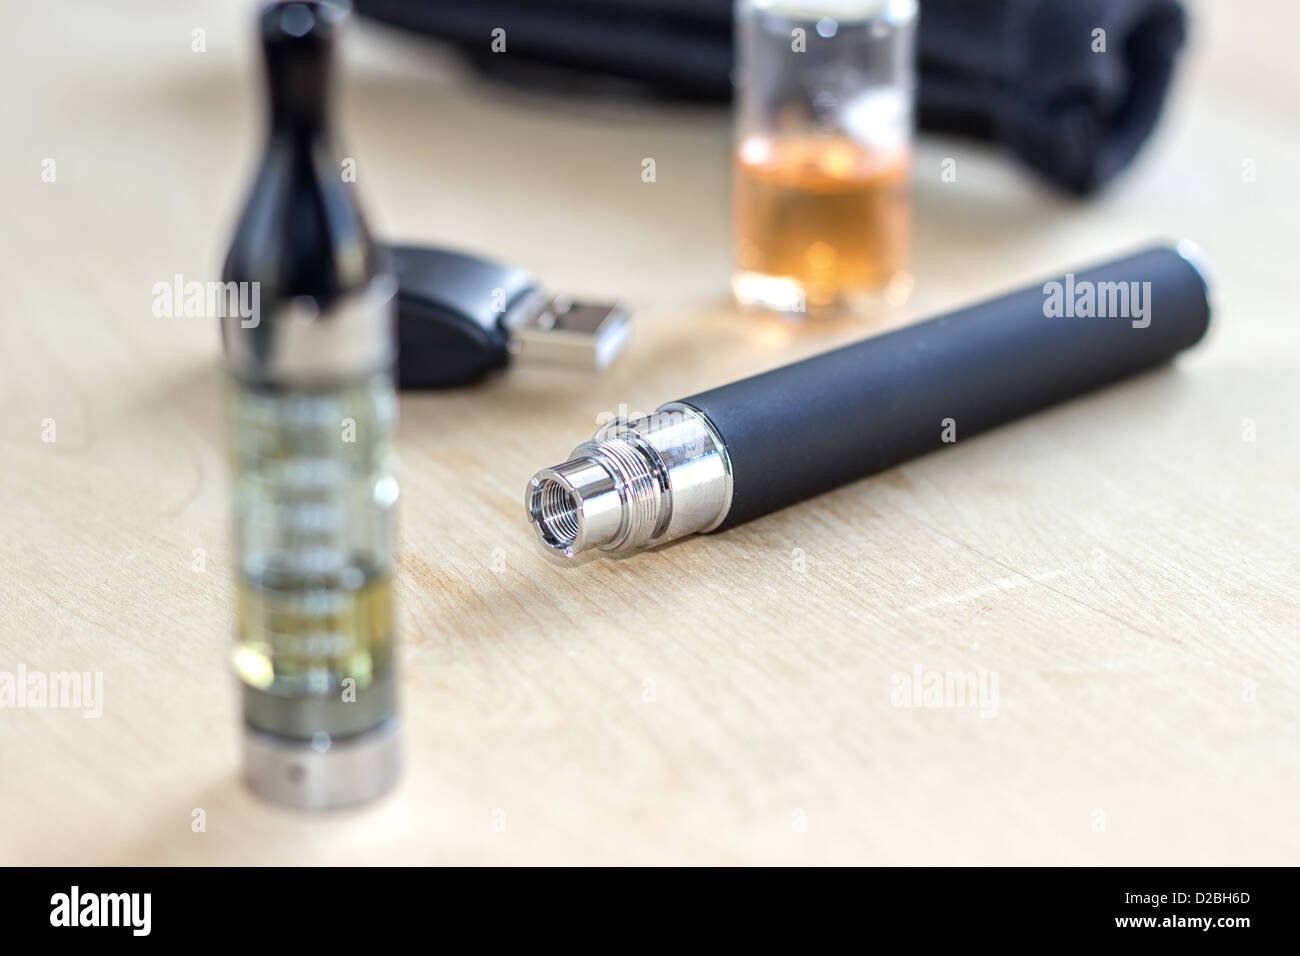 Black electronic nicotine inhalator on table - Stock Image